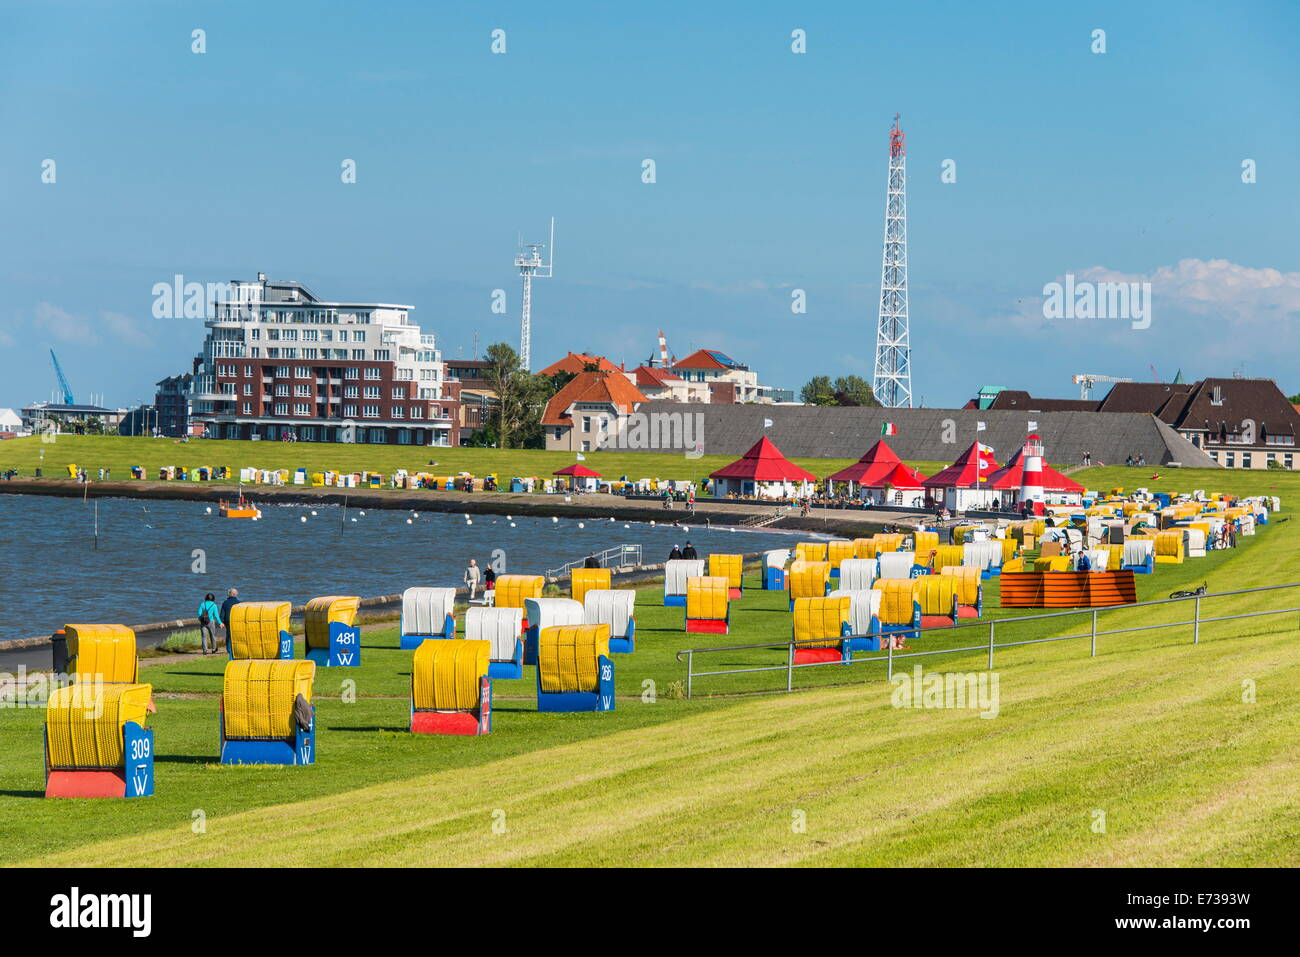 Colourful beach chairs on the beach of Cuxhaven, Lower Saxony, Germany, Europe - Stock Image